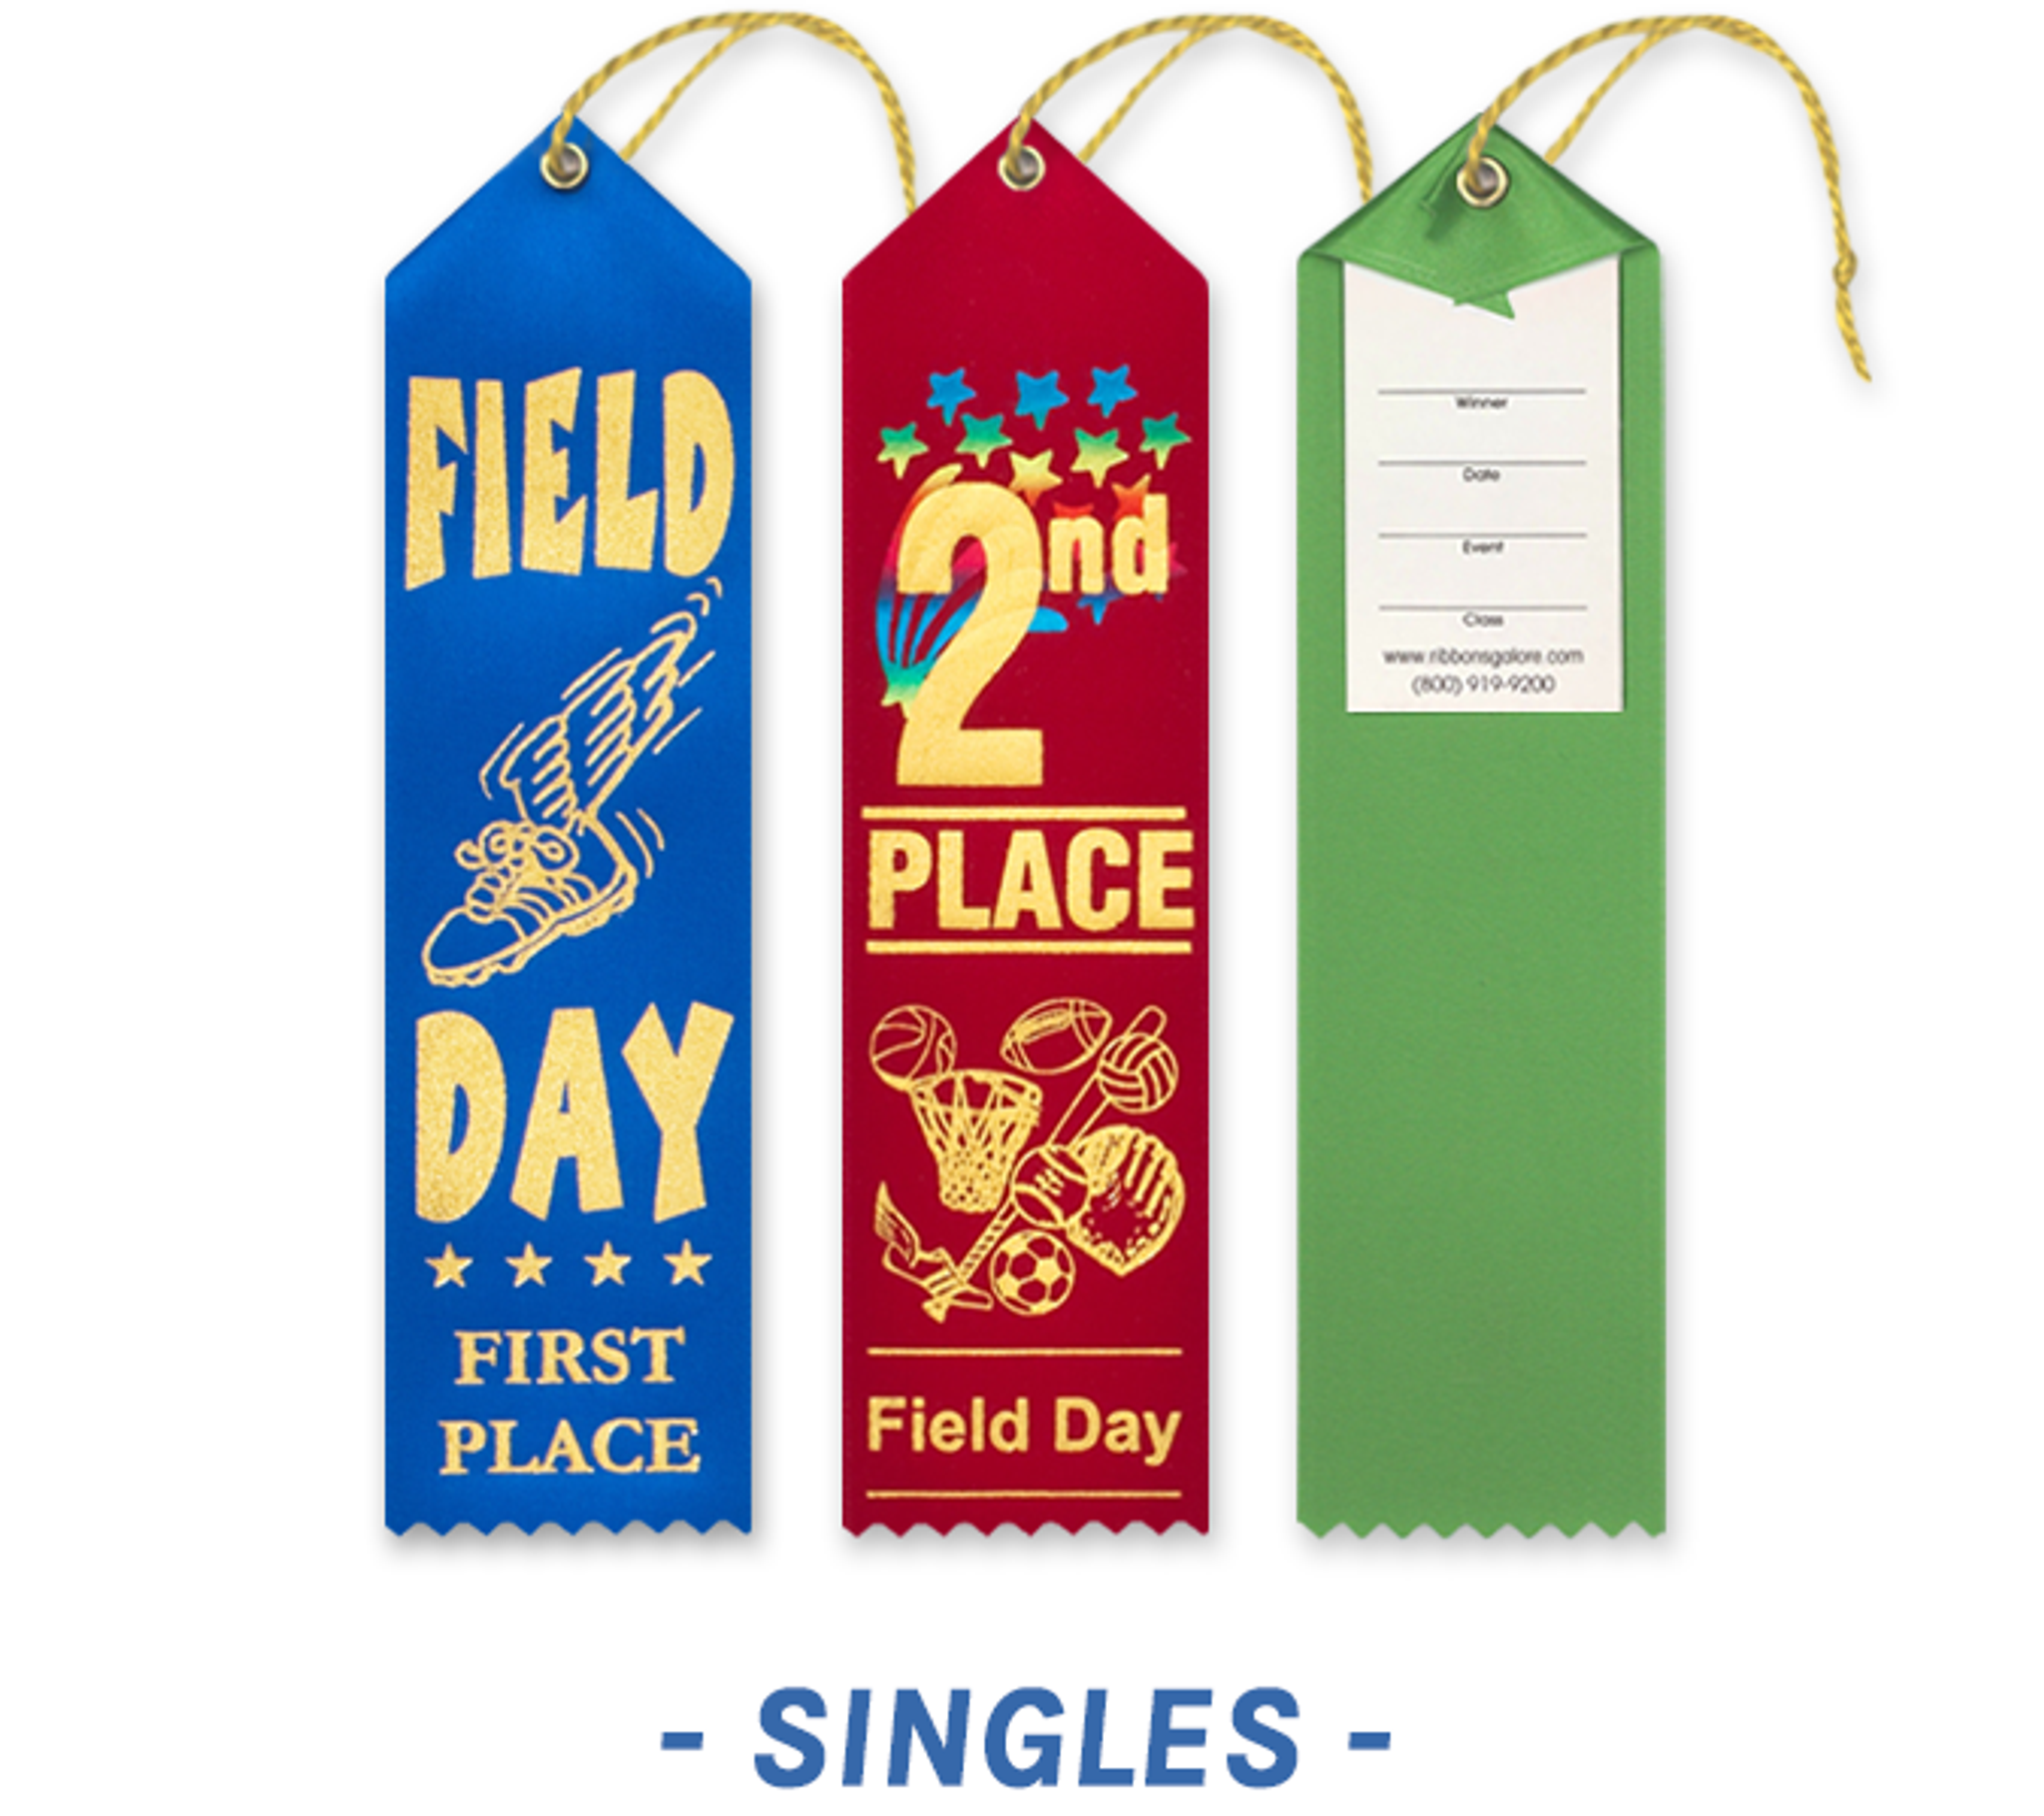 Field Day Award Ribbons with Card and String